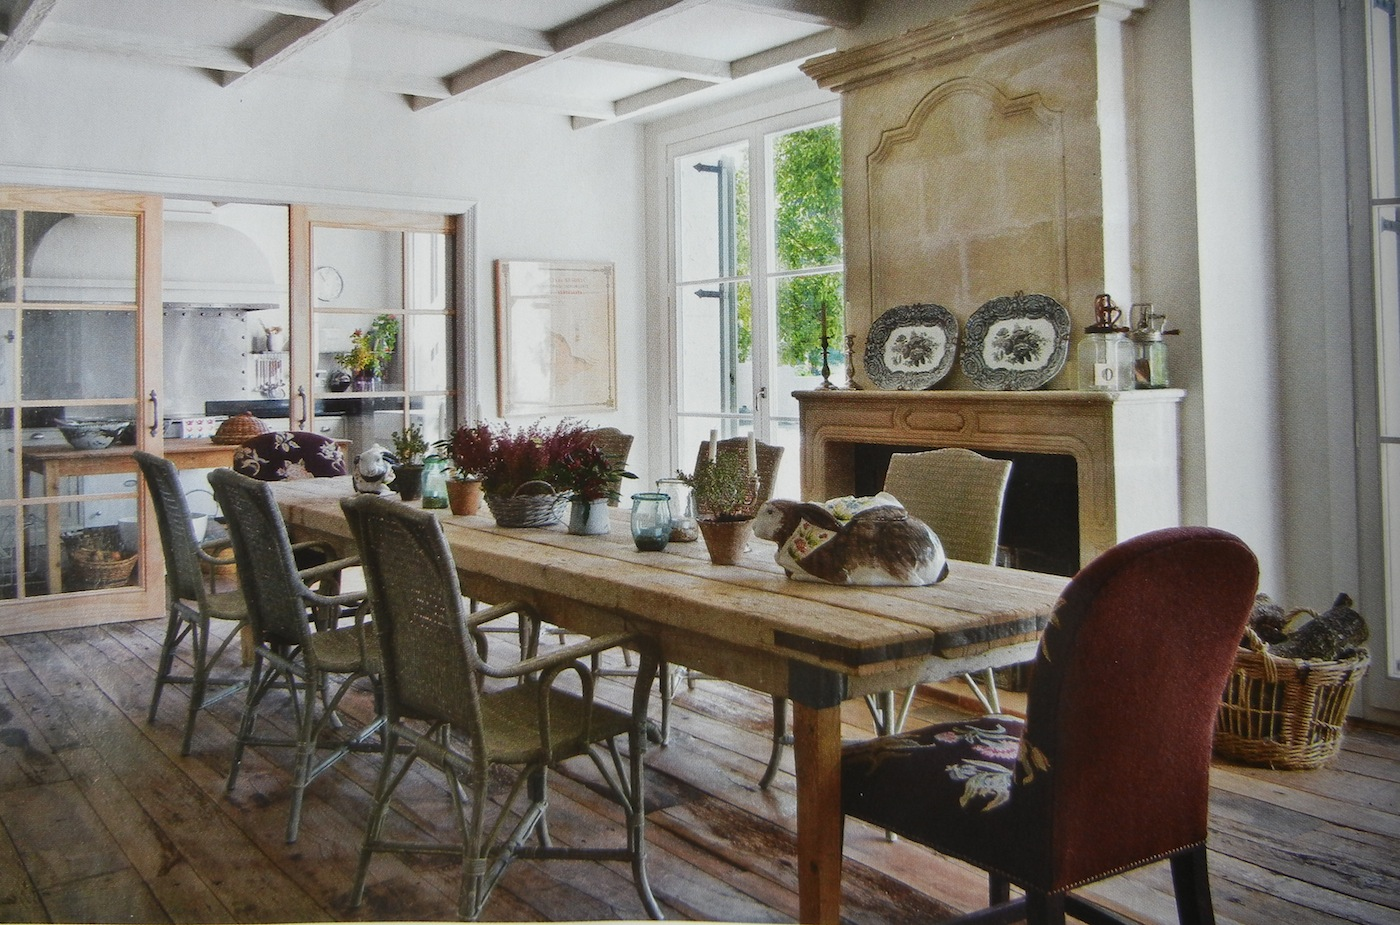 Auction decorating rustic dining tables in spain for Dining decor ideas